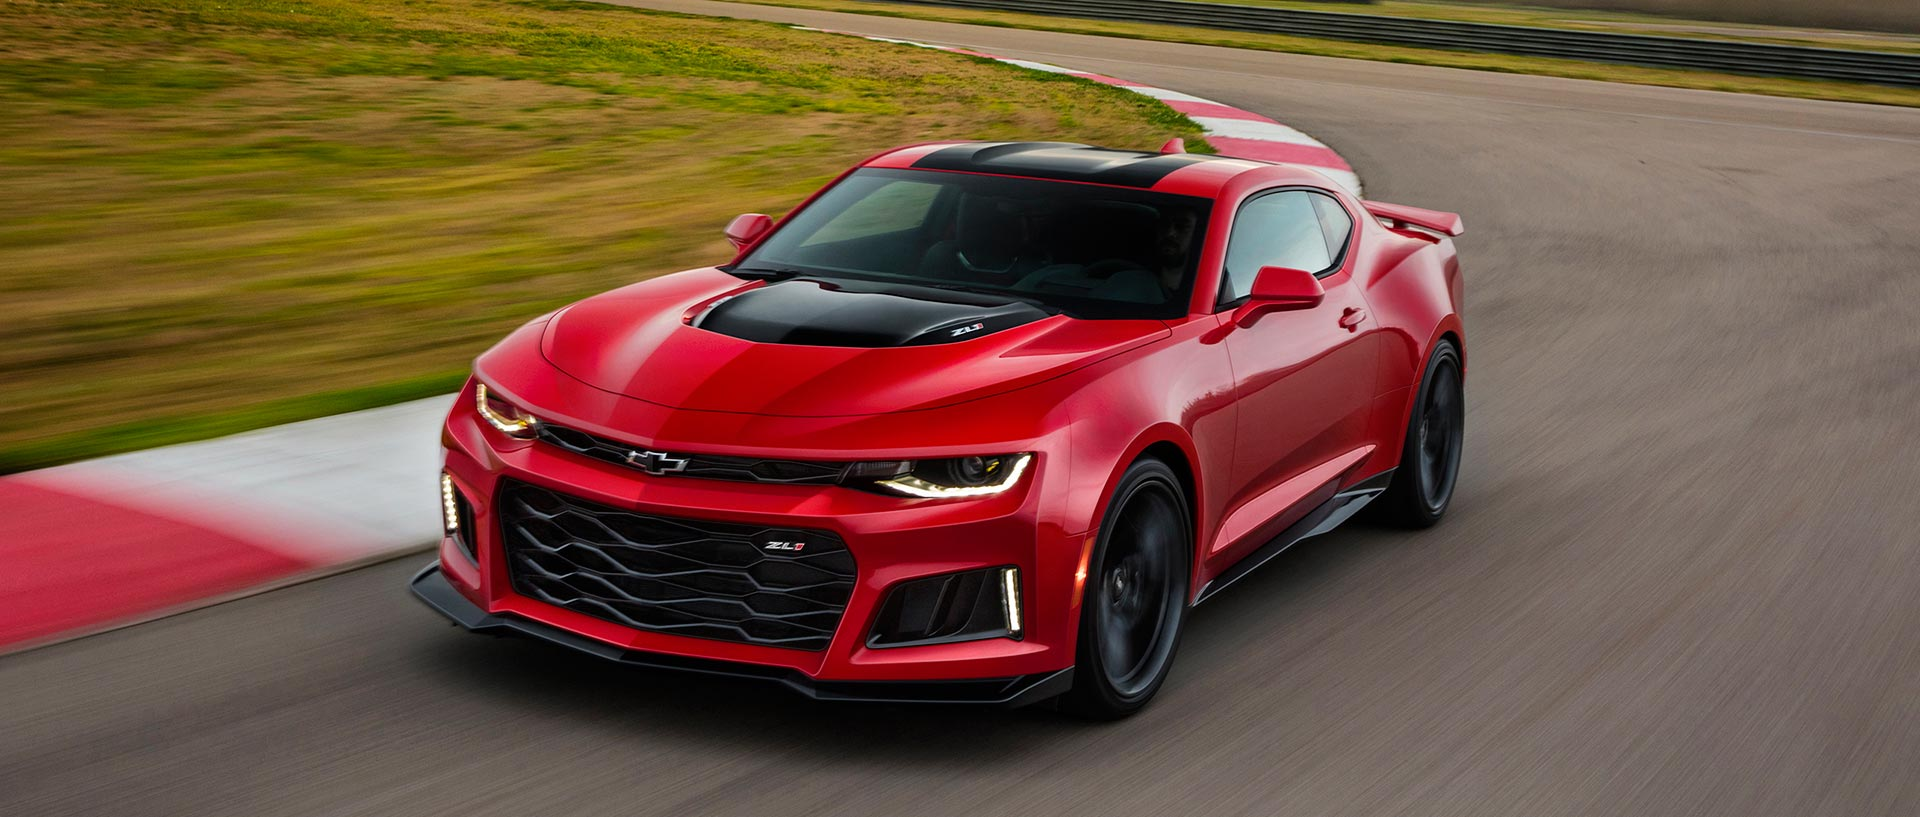 2017 Chevrolet Camaro Zl1 Brings Muscle To New York